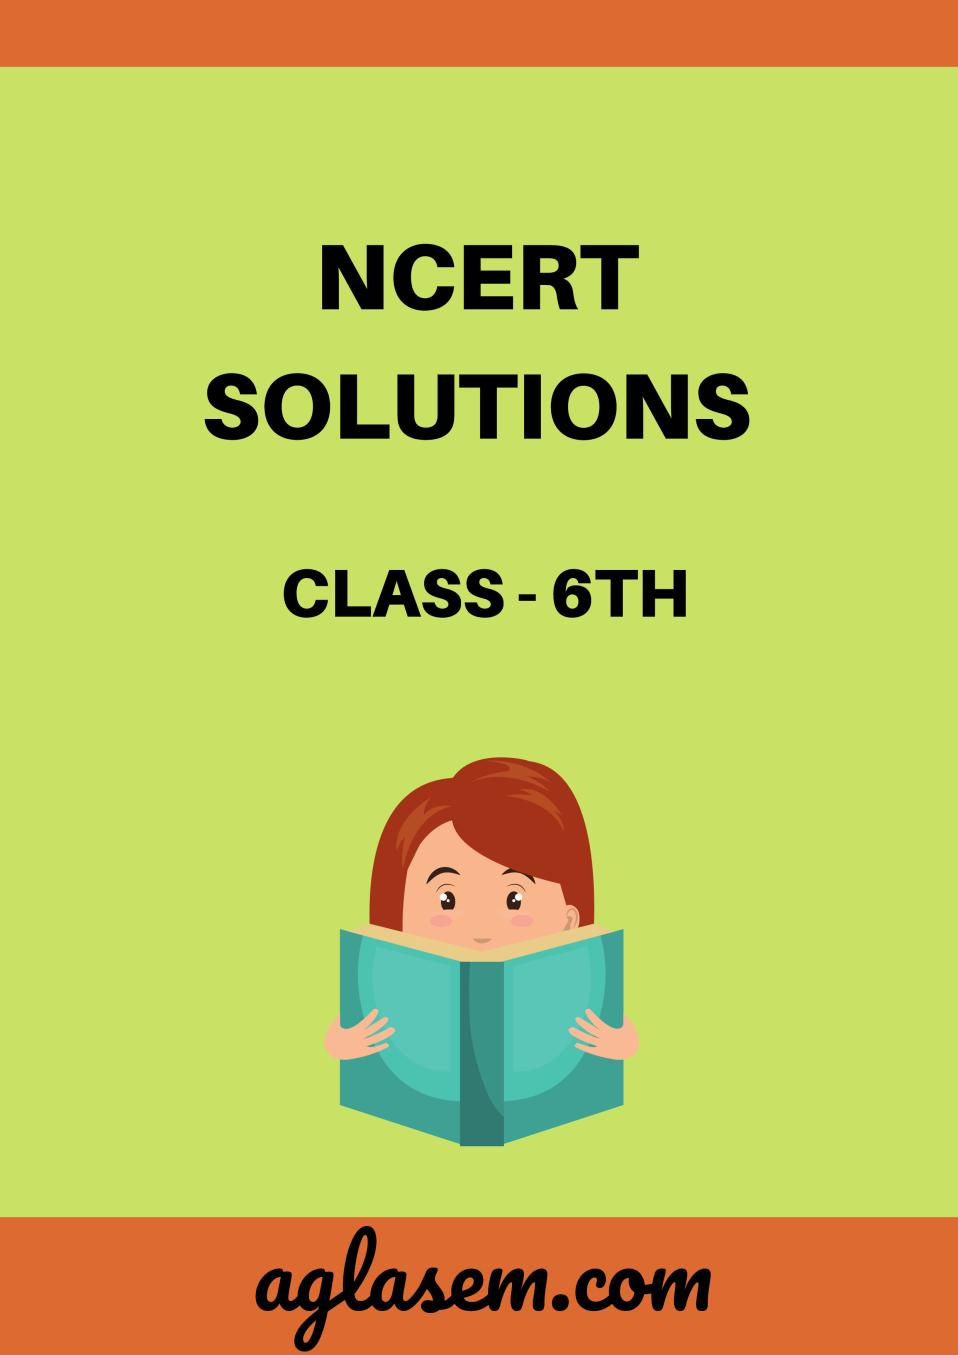 NCERT Solutions Class 6 English (A Pact with the Sun) Chapter 1 Name A Tale of Two Birds